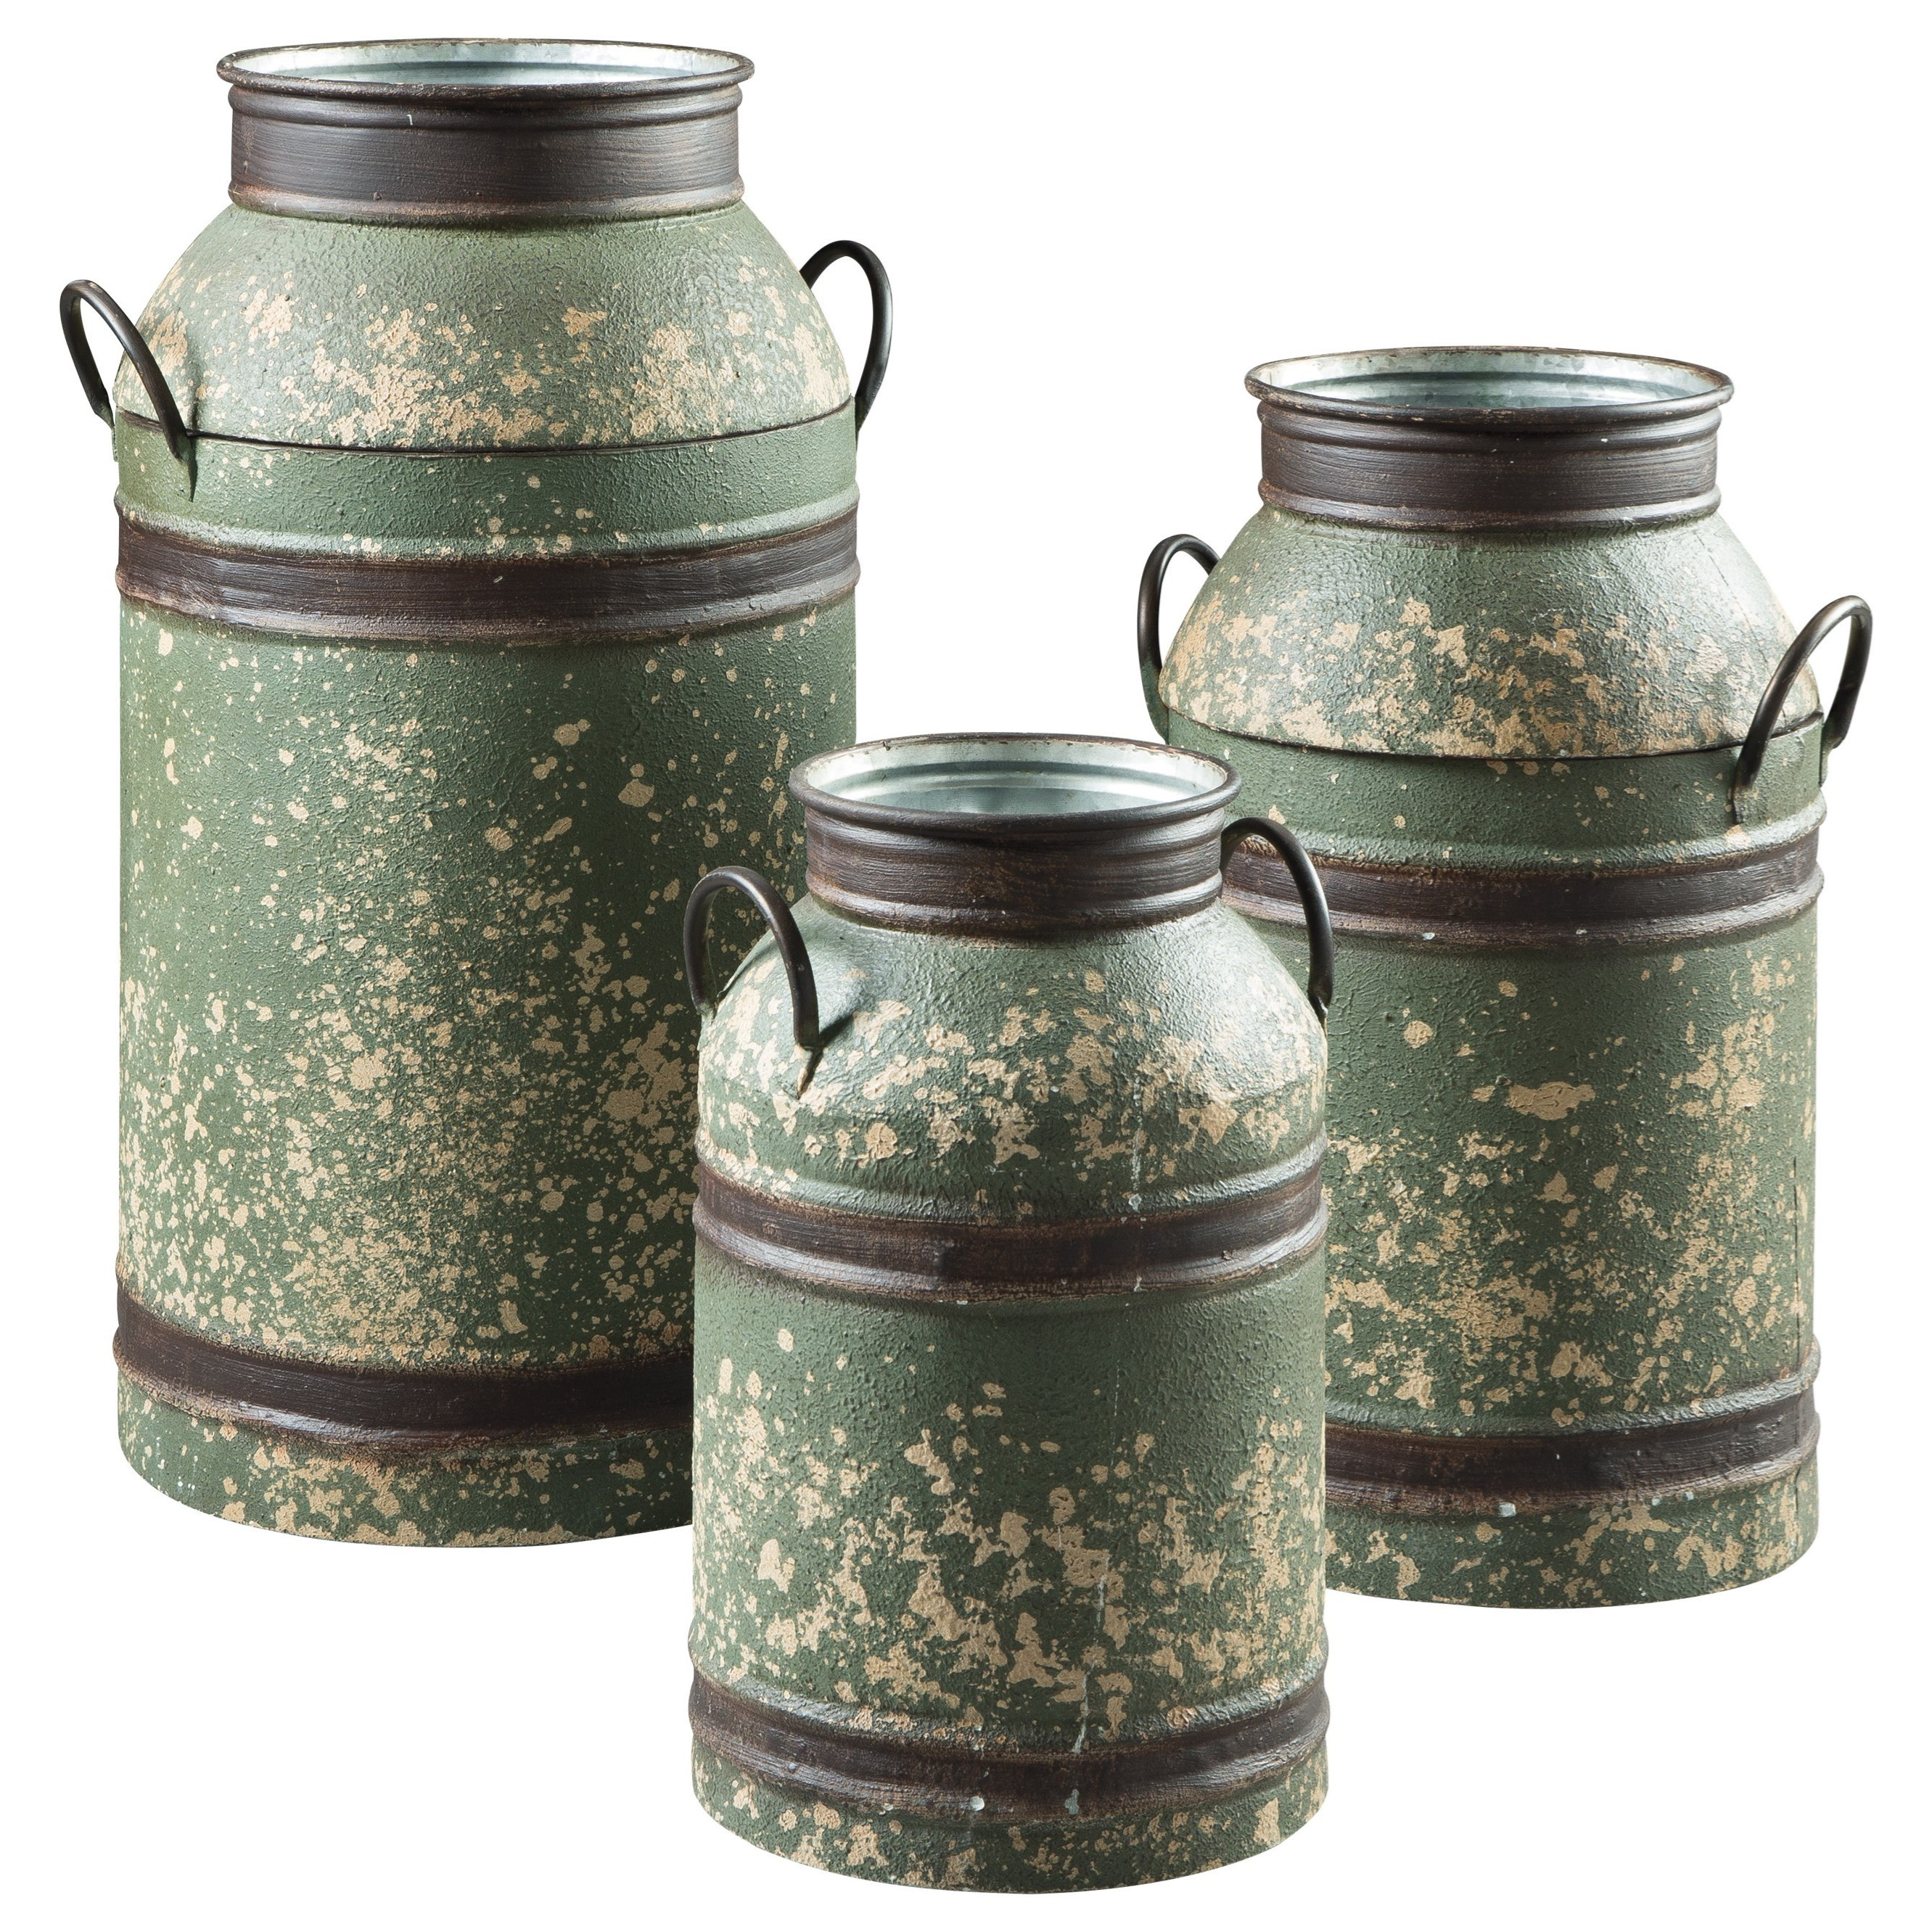 Accents Elke Antique Green/Brown Milk Can Set by Signature Design by Ashley at Coconis Furniture & Mattress 1st